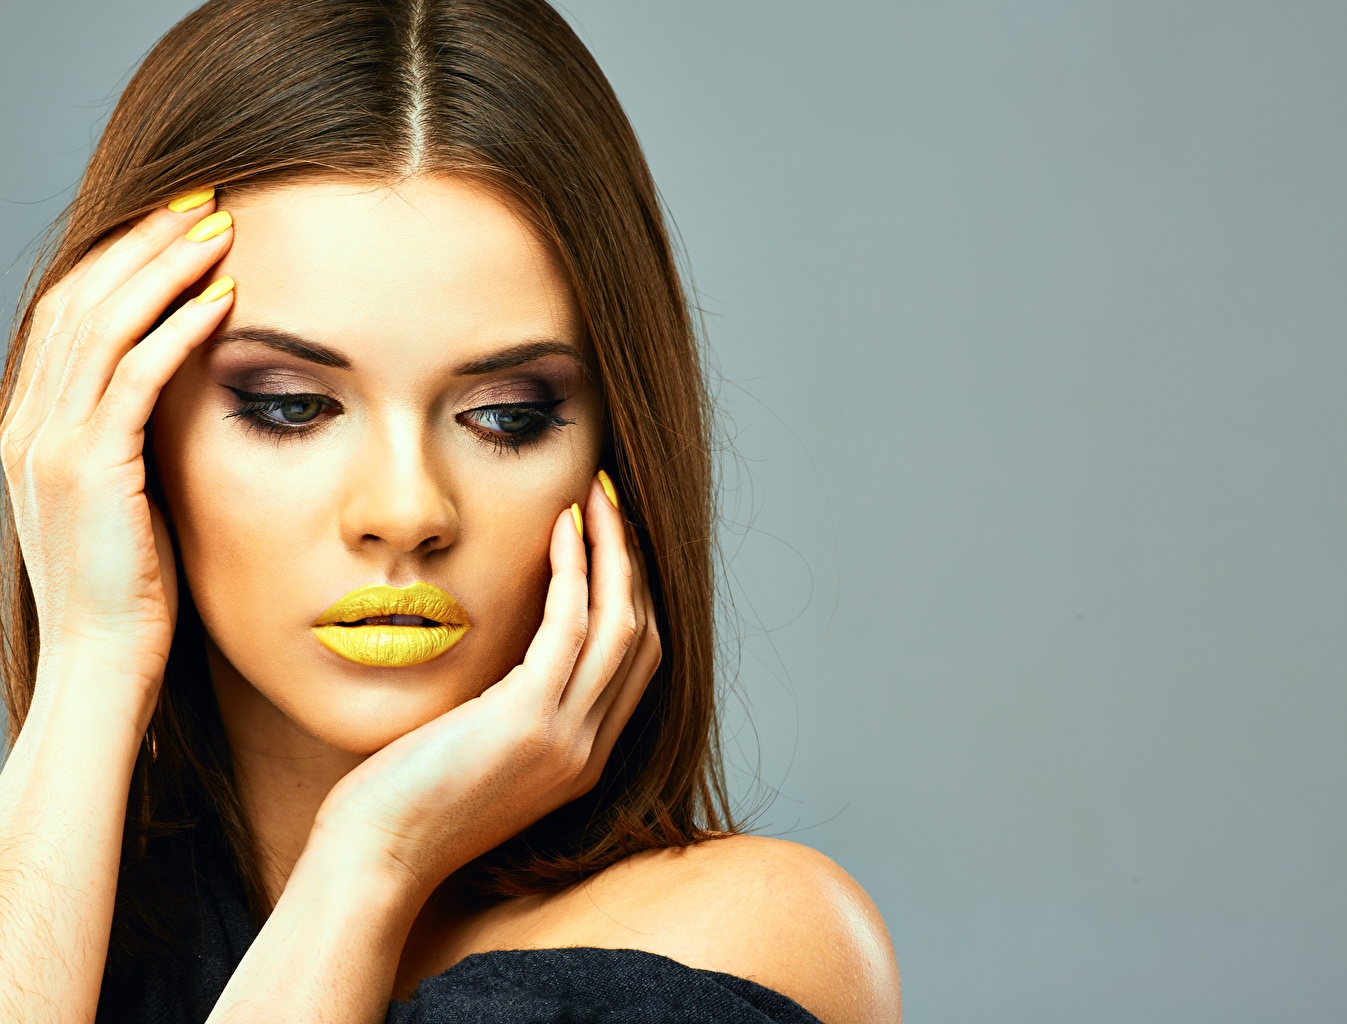 Wallpaper Brown haired Model Manicure Makeup Girls Lips Hands Gray background Modelling female young woman